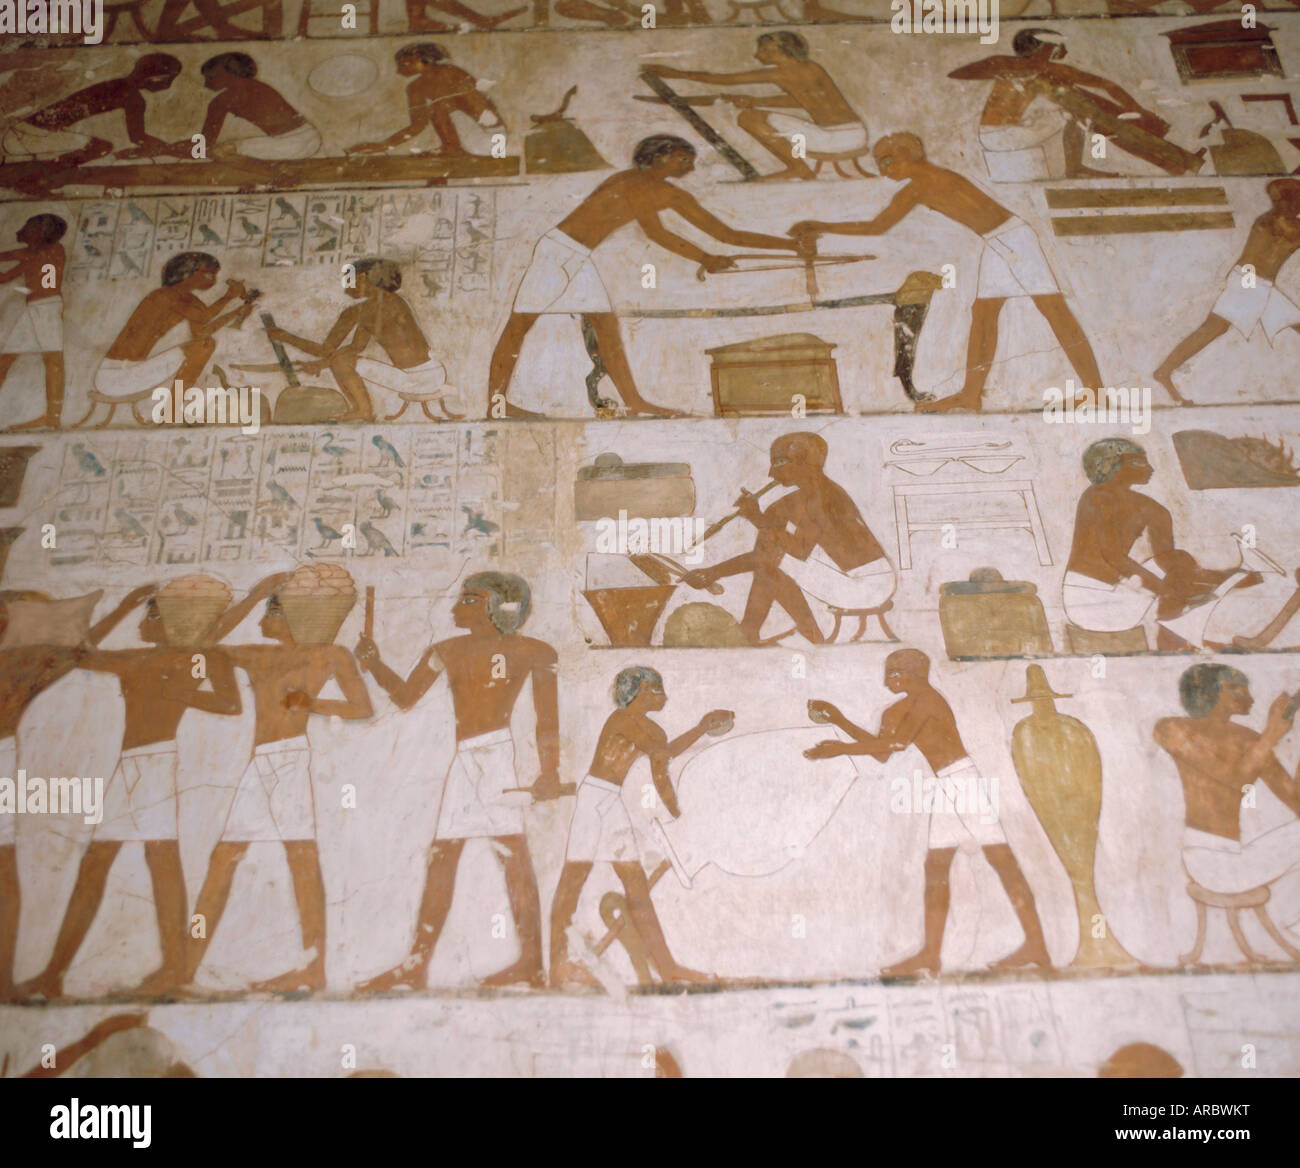 Depictions of everday life, Tomb of Renhuire, Thebes, Egypt - Stock Image